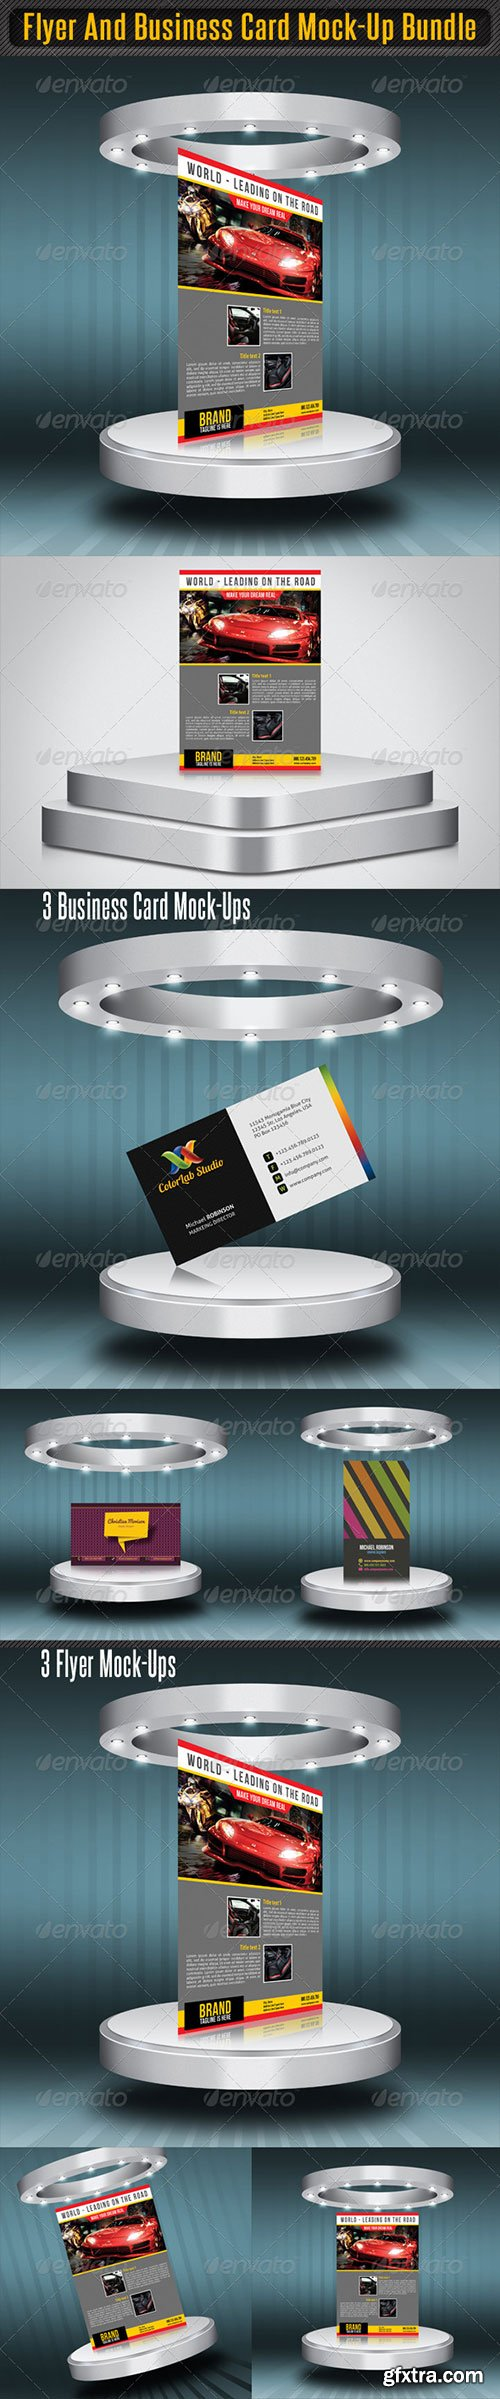 Vector photoshop psdafter effects tutorials template 3d page graphicriver flyer and business card mock up bundle reheart Image collections